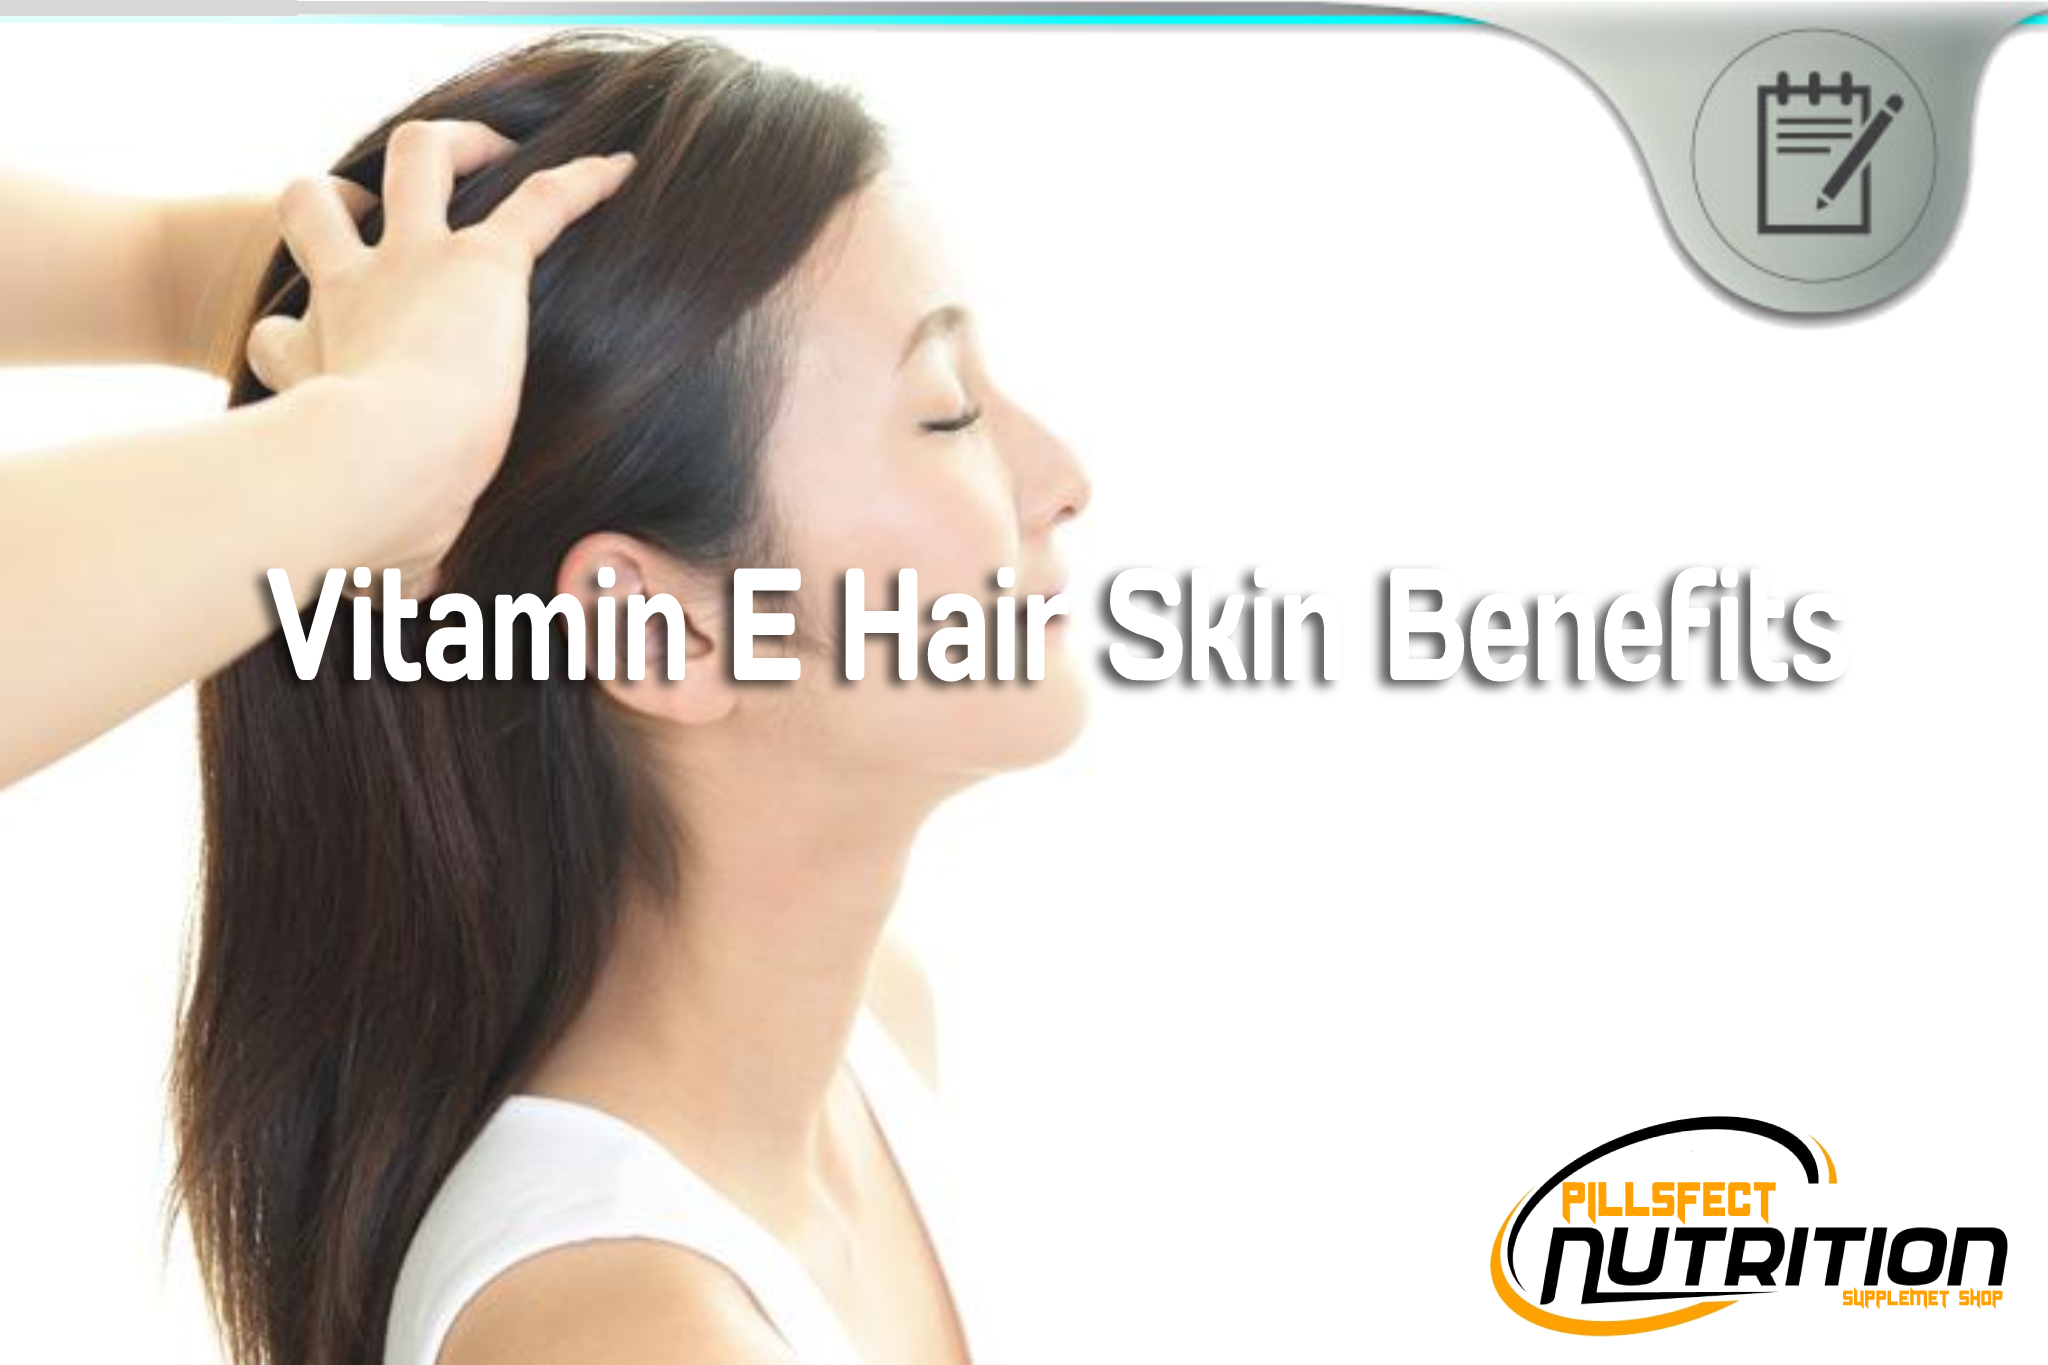 Vitamin E Hair Skin Benefits - Is Vitamin E Good For Your Hair and Skin